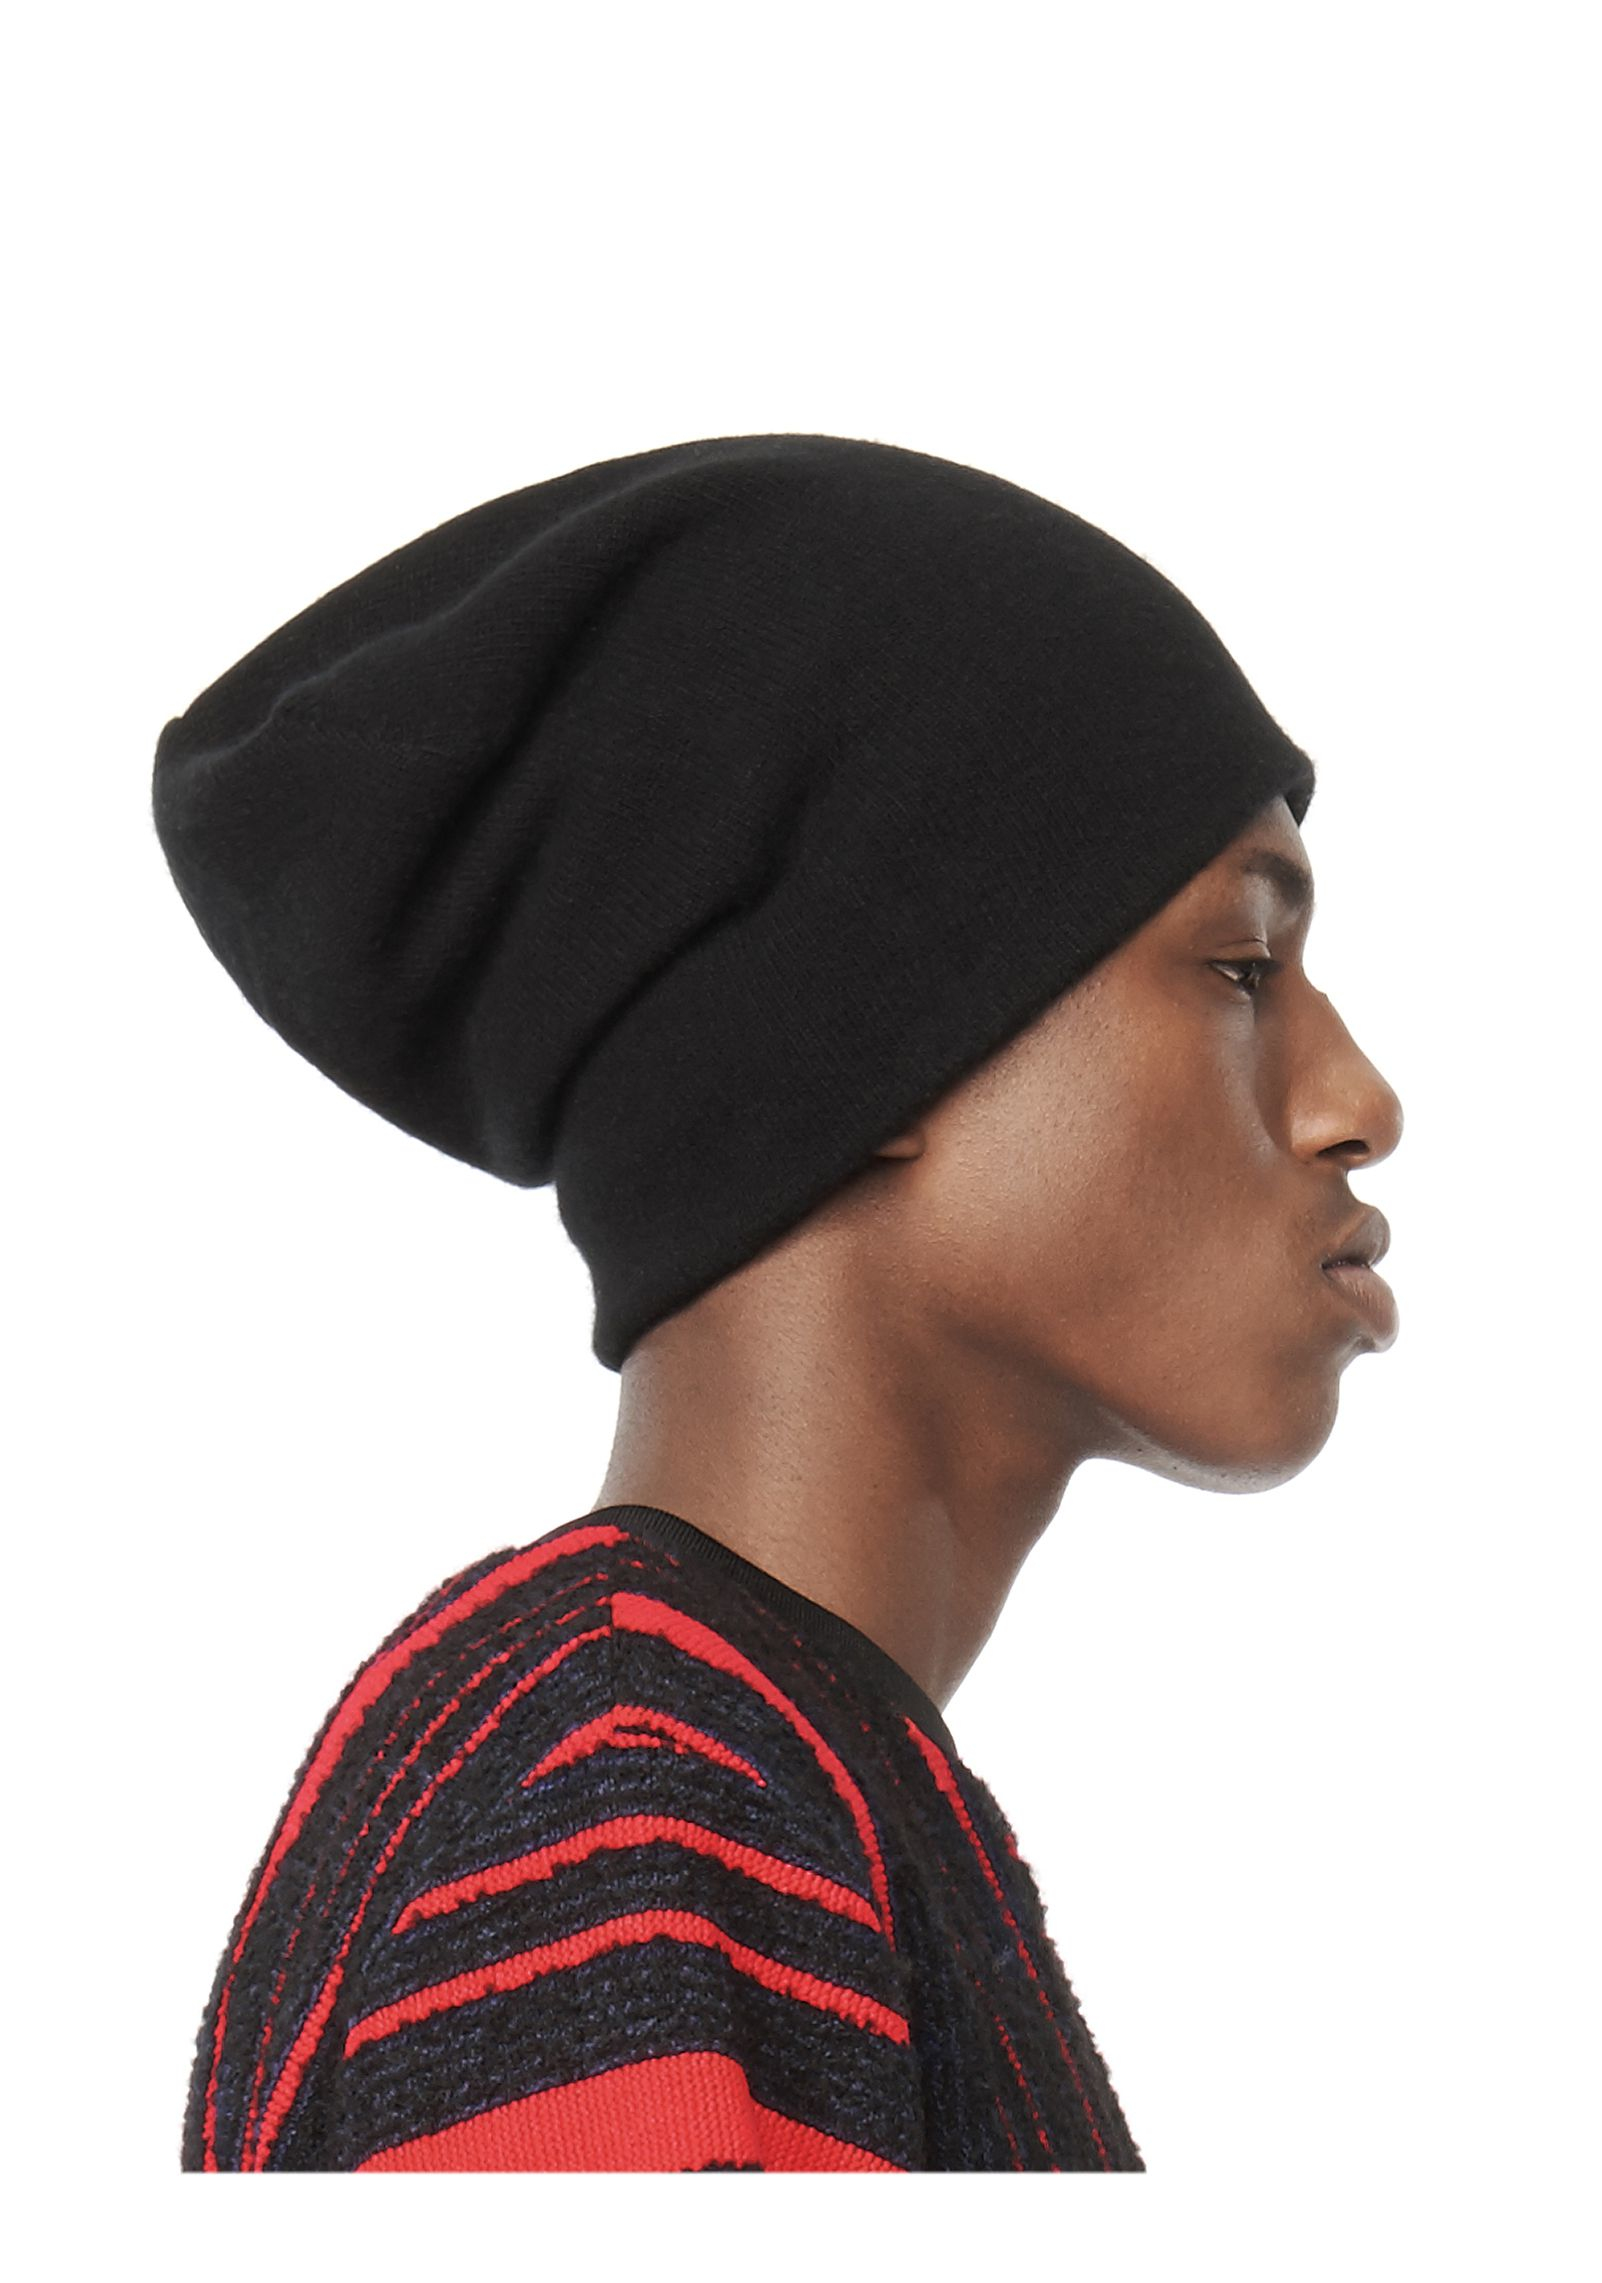 5d33ed2b4df92 Alexander Wang Cashmere Beanie in Black for Men - Lyst